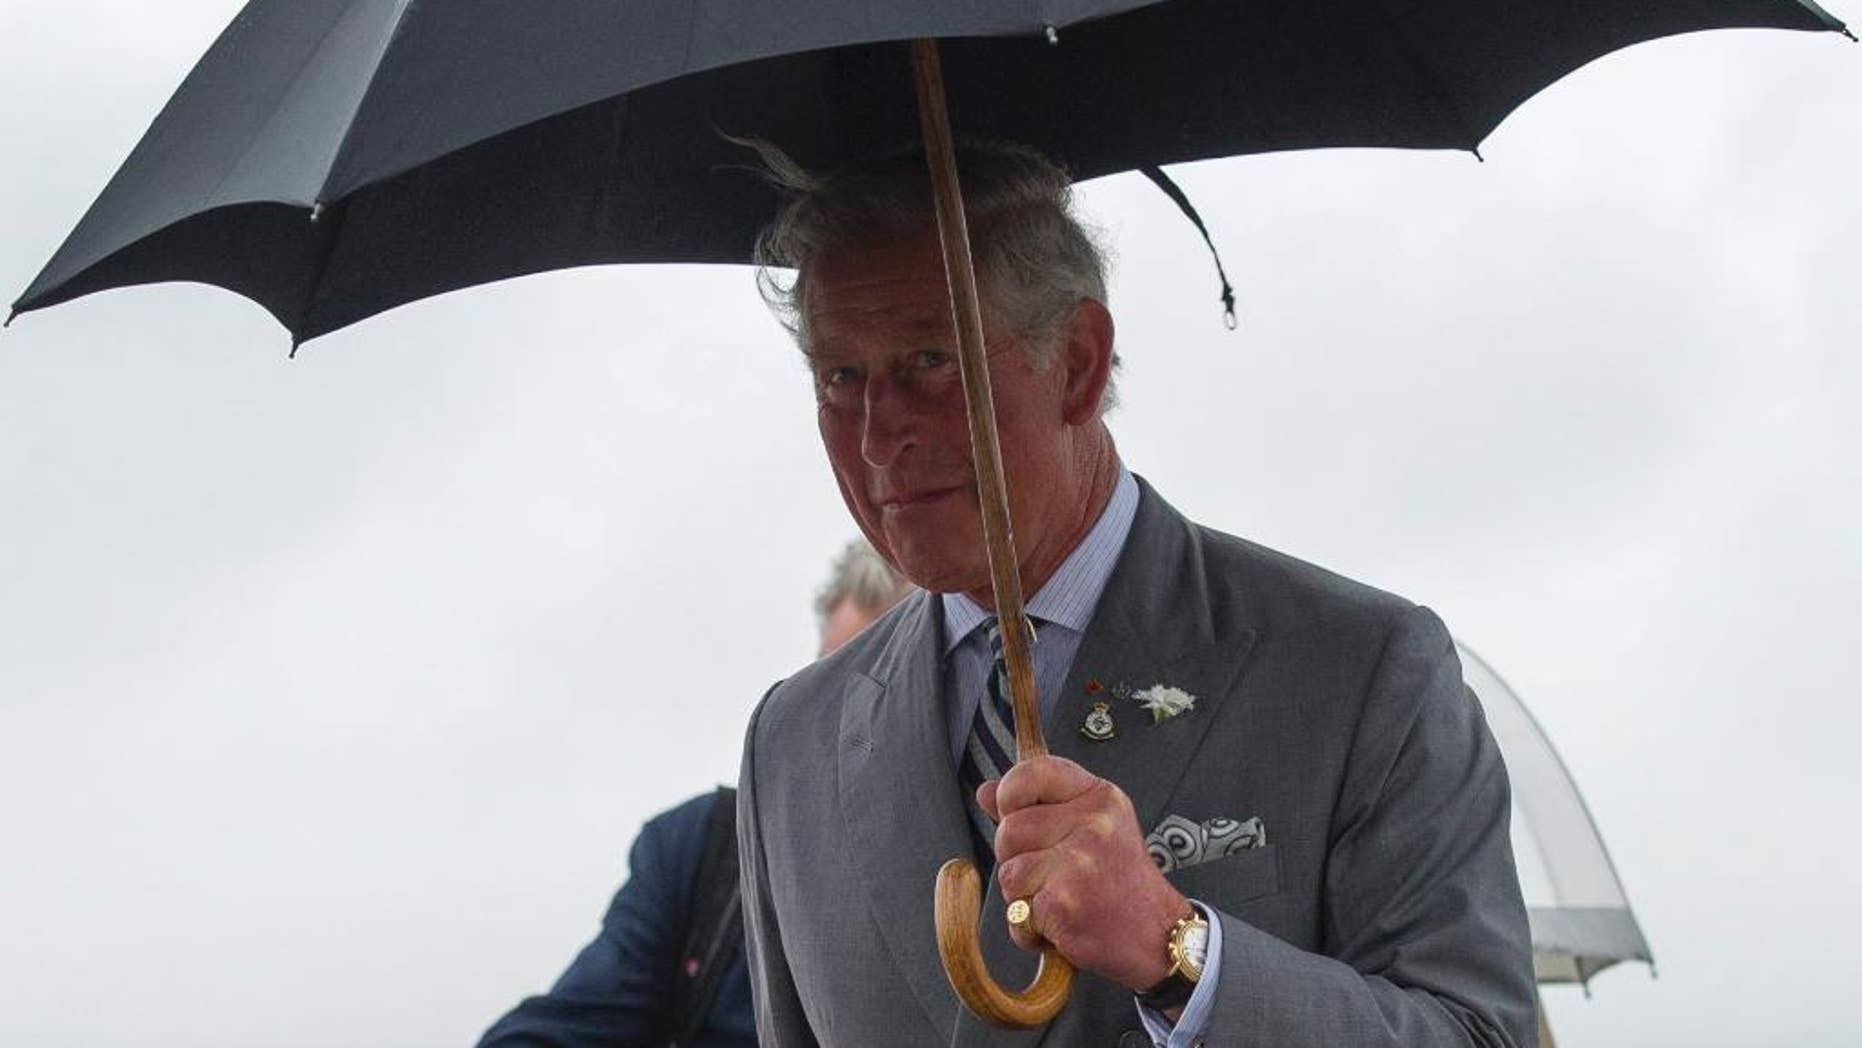 Prince Charles arrives in the rain at a Canadian Forces Base airport in Winnipeg, Canada, May 20, 2014 (AP Photo/The Canadian Press, David Lipnowski)